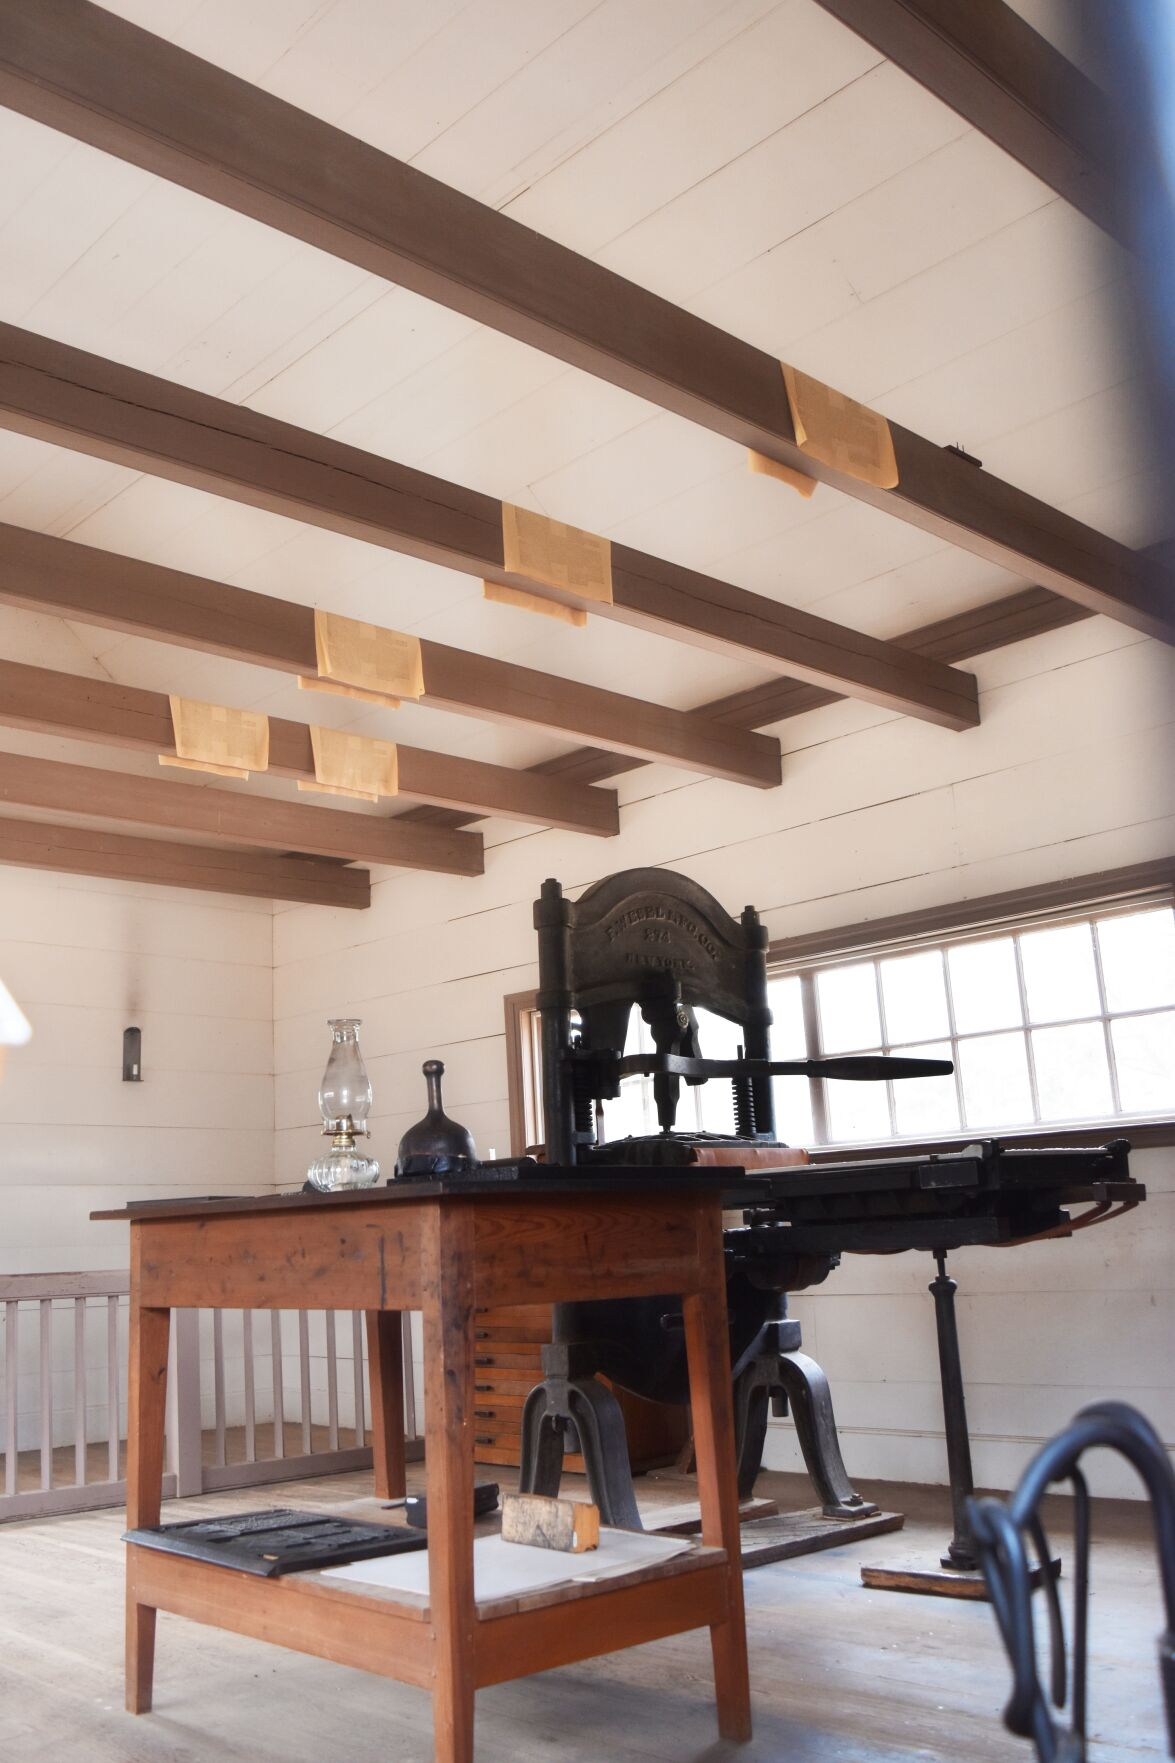 New Echota sunrise tours planned for June 5th